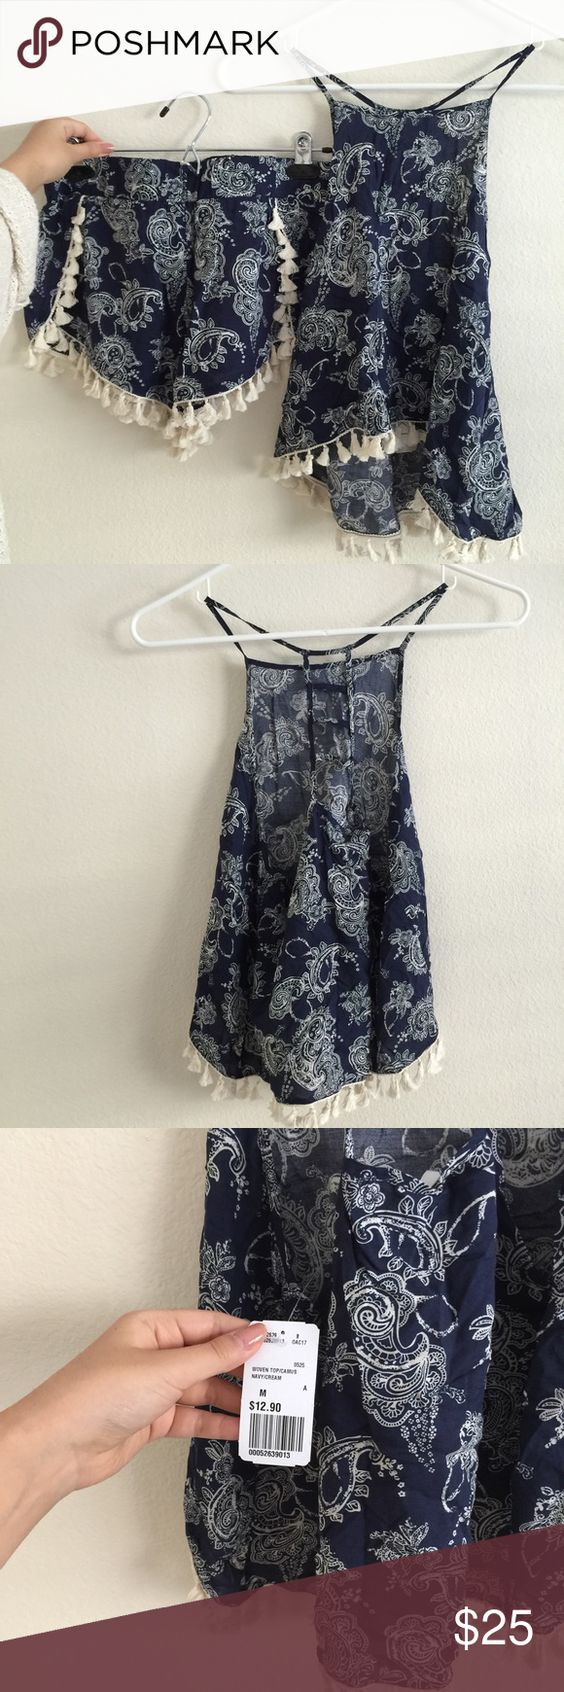 Paisley matching set PRICES FIRM UNLESS BUNDLED.   Fringed navy blue and cream matching tank top and shorts set. Tassels trim on both. Ladder cutout on tank top. Both size medium. Never worn. Tank is new with tags. Only selling as a set.   I DO NOT TRADE nor sell on other apps. Unfortunately I'm also unable to model my items. I'm a full time college student and don't have the time to do so. Please also understand if I'm a bit slow to respond to messages and provide measurements for the above…